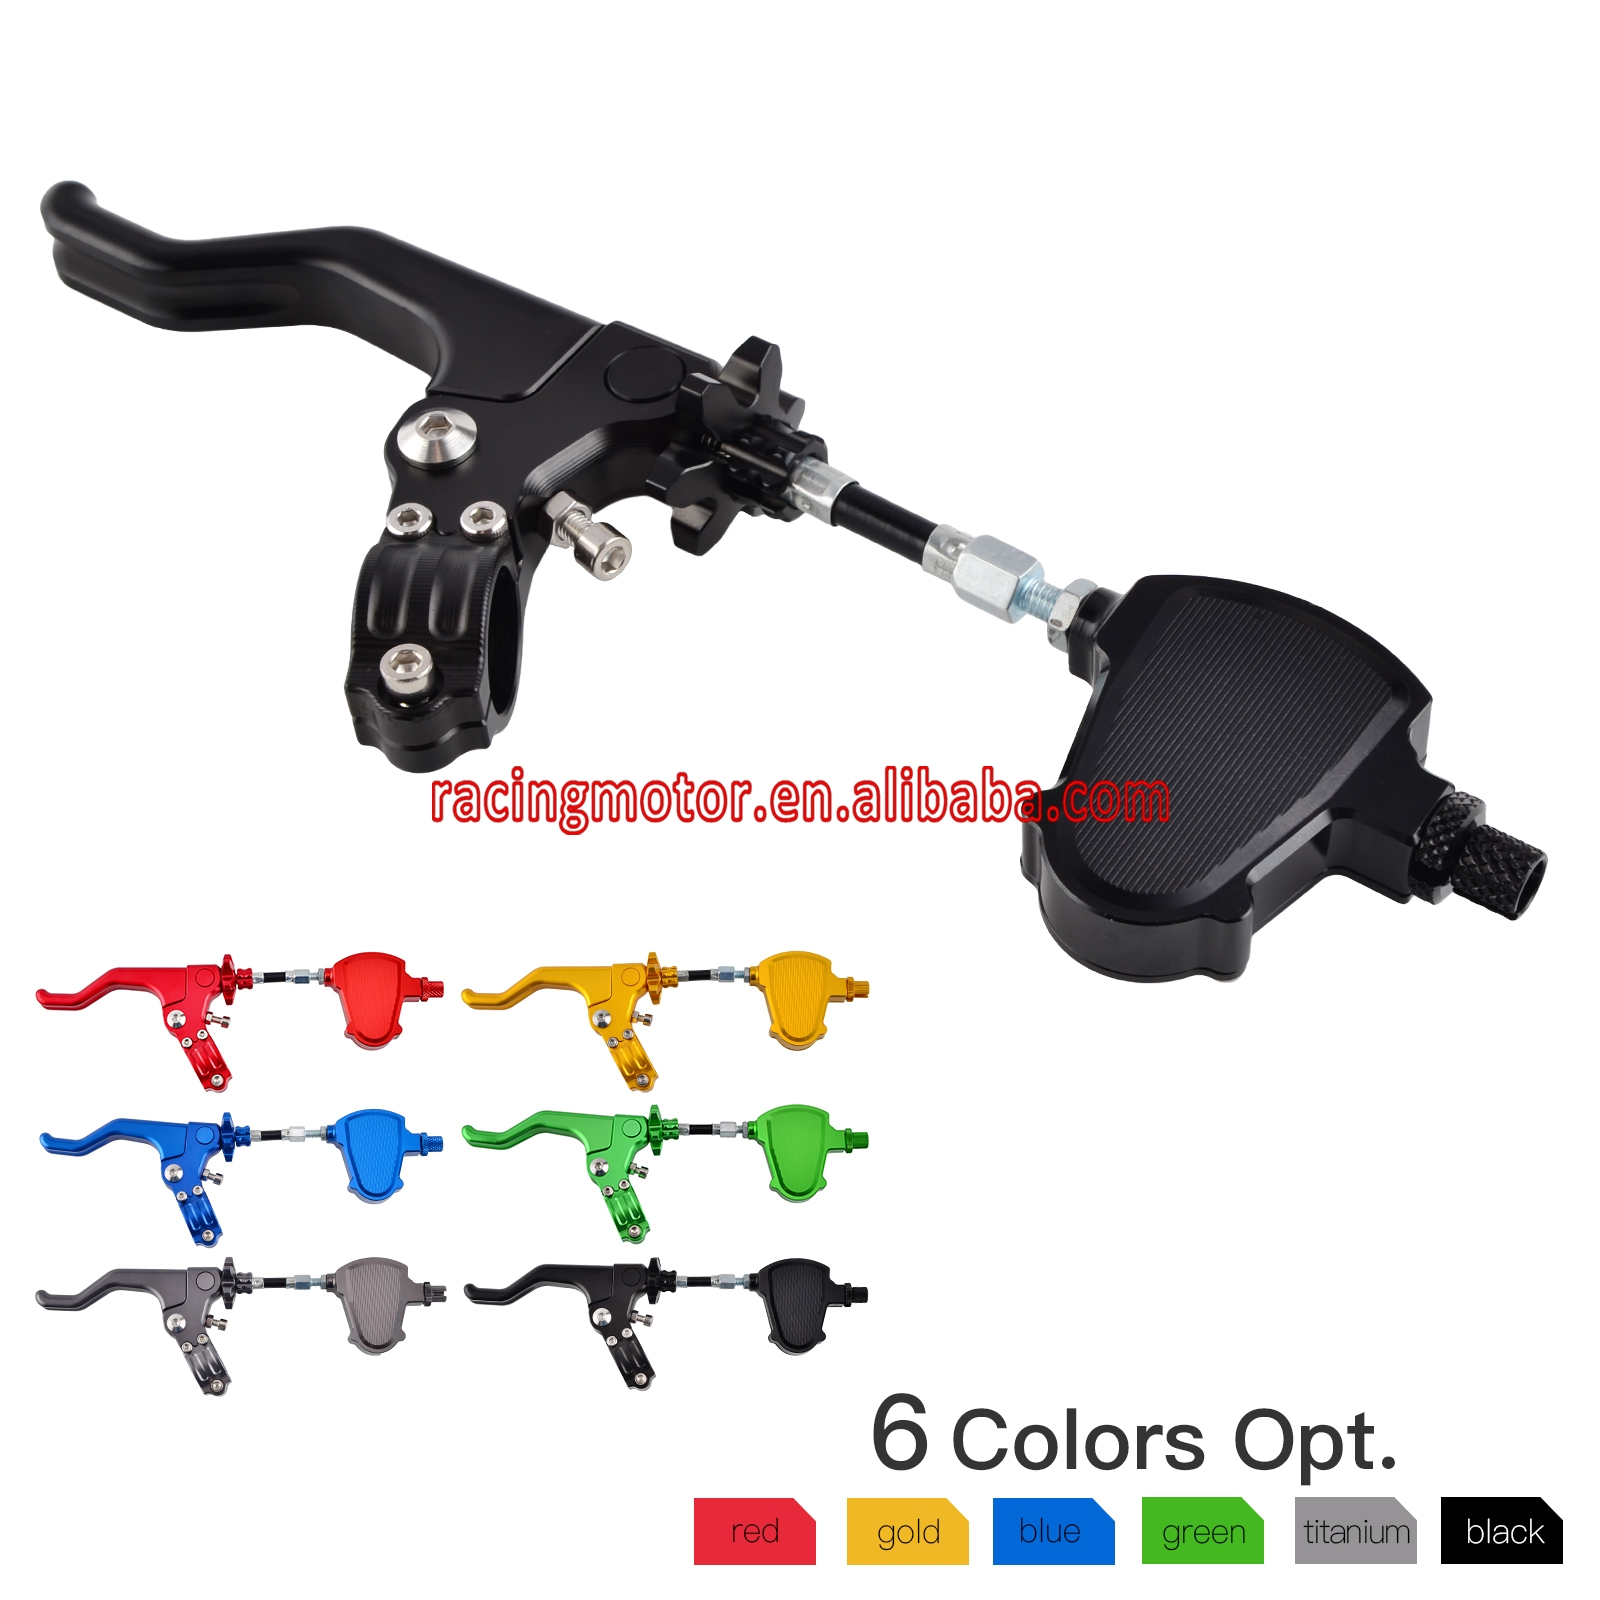 CNC Stunt Clutch Pull Cable Lever Easy System for Yamaha YZF R1 R1M R1S R3 R6 R25 MT-10 FZ-10 MT-09 FZ-09 MT-07 FZ-07 MT 07 09 konka microcomputer intelligent control air fryer 2 5l smokeless electric air fryer french fries machine non stick fryer 220v eu